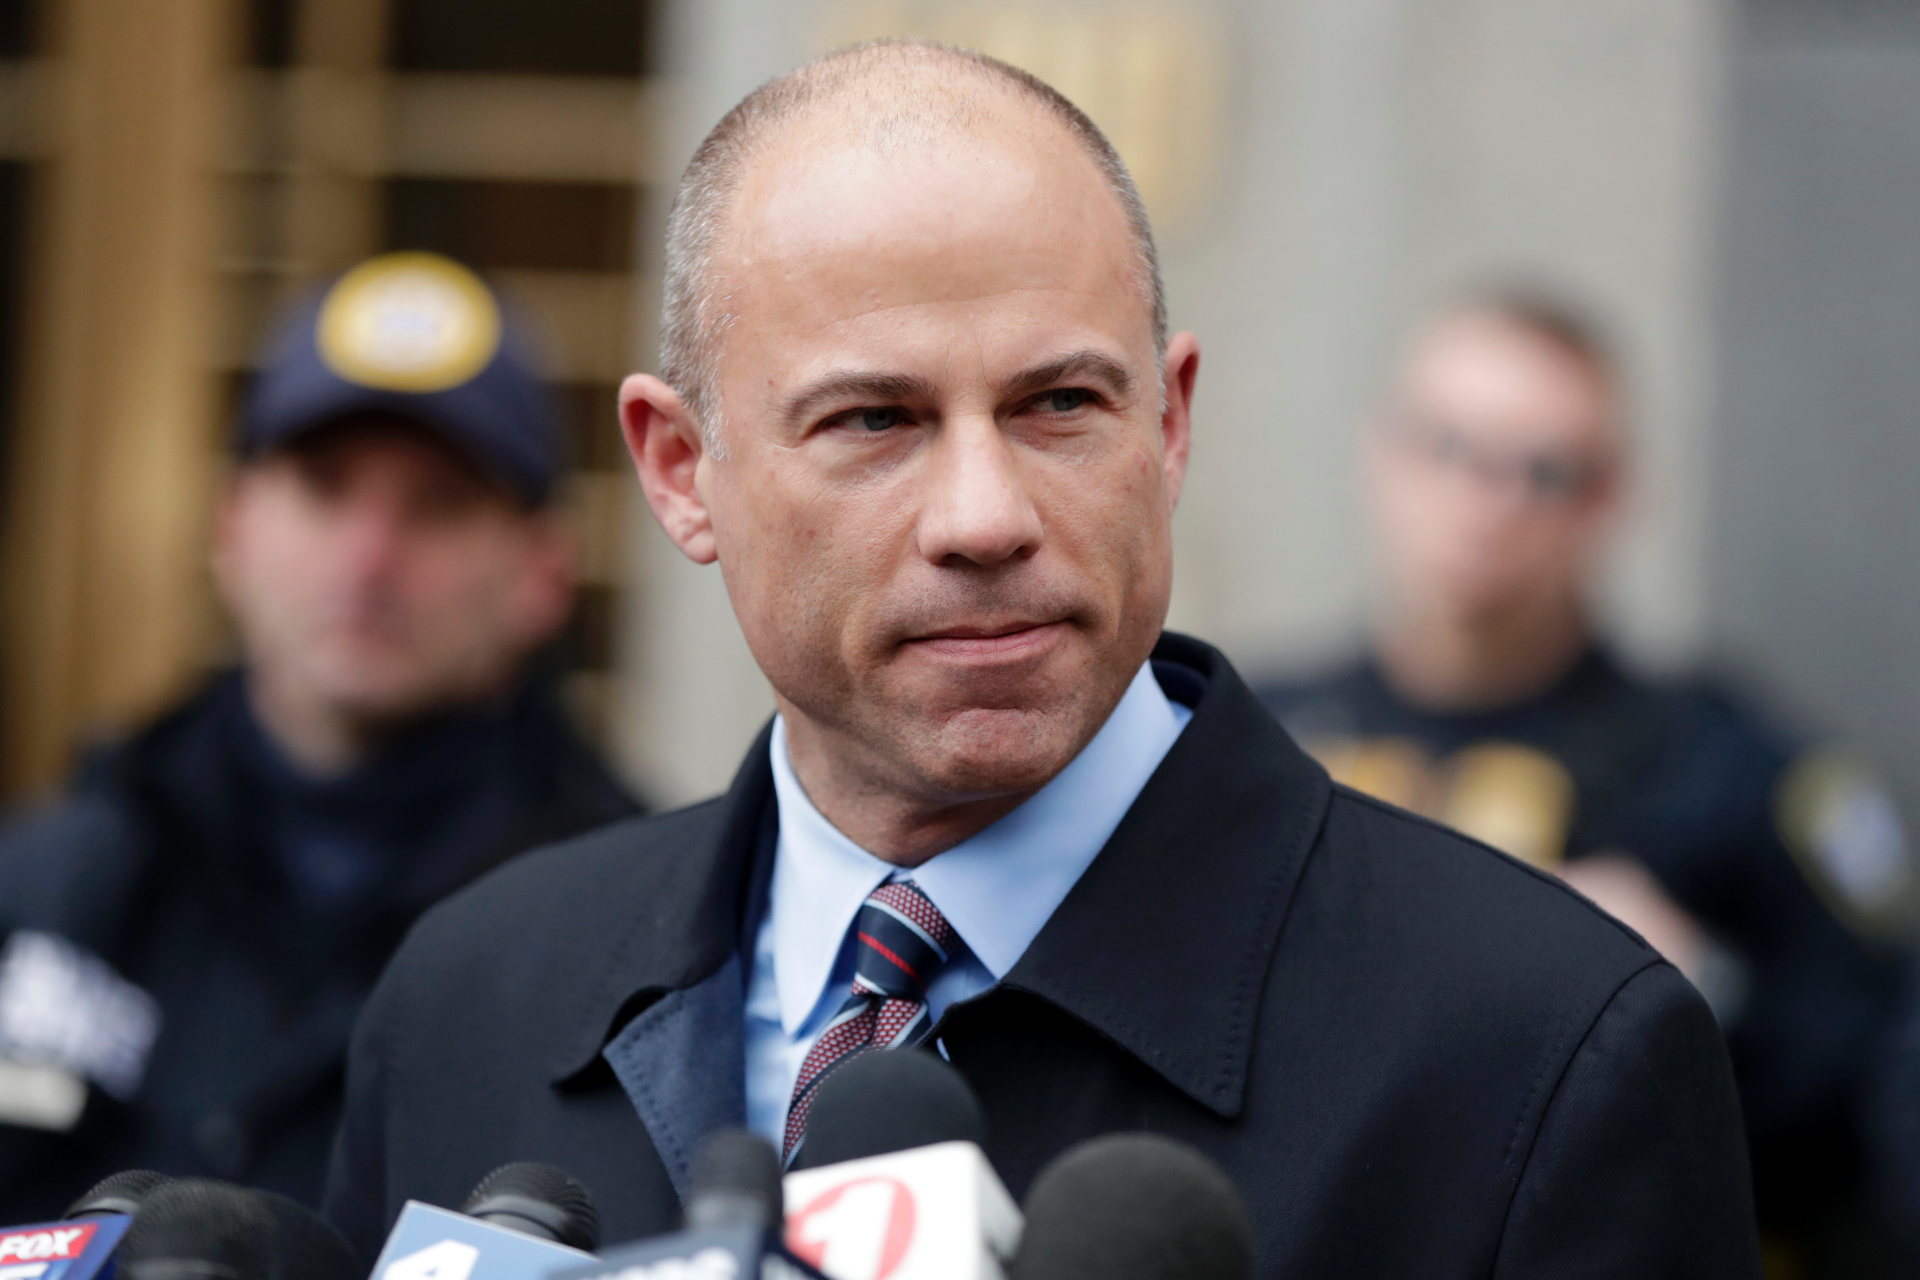 Westlake Legal Group c8975c4d-ContentBroker_contentid-c01ee37219fe4dd38ee32a7c392a6381 Michael Avenatti pleads not guilty in federal wire, bank fraud case Lucia Suarez Sang fox-news/us/crime fox-news/person/michael-avenatti fox news fnc/us fnc article 5793fb5c-3582-5323-b45e-0751d792f86a